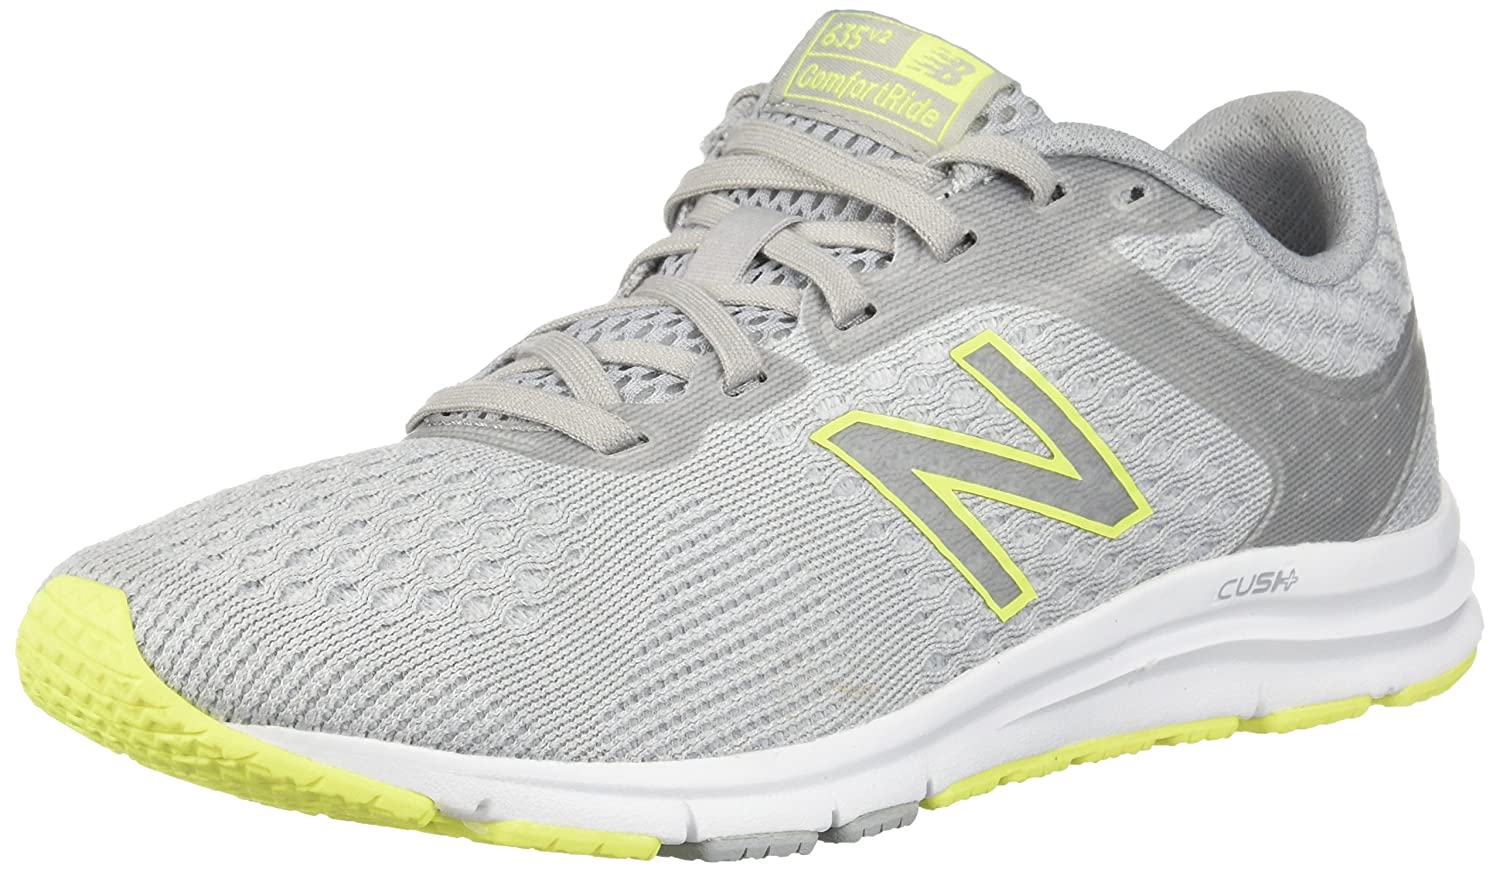 New Balance Women's 635v2 Cushioning Running Shoe B06XS8W3ZN 11 B(M) US|Silver/Yellow